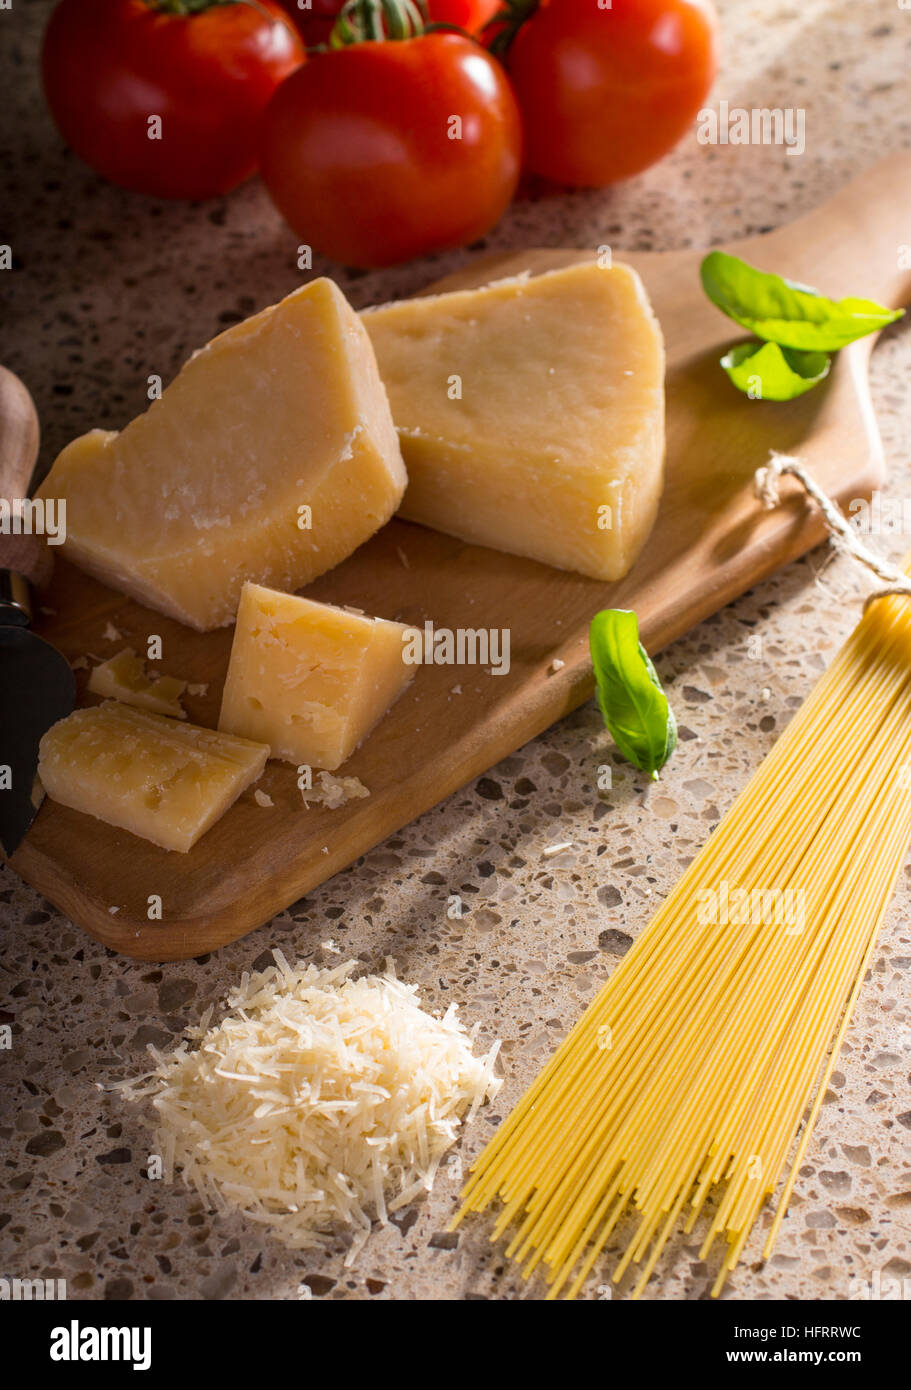 Blocks of Parmesan Cheese with Tomatoes, Basil Leaves, Pasta, and Grated Cheese - Stock Image